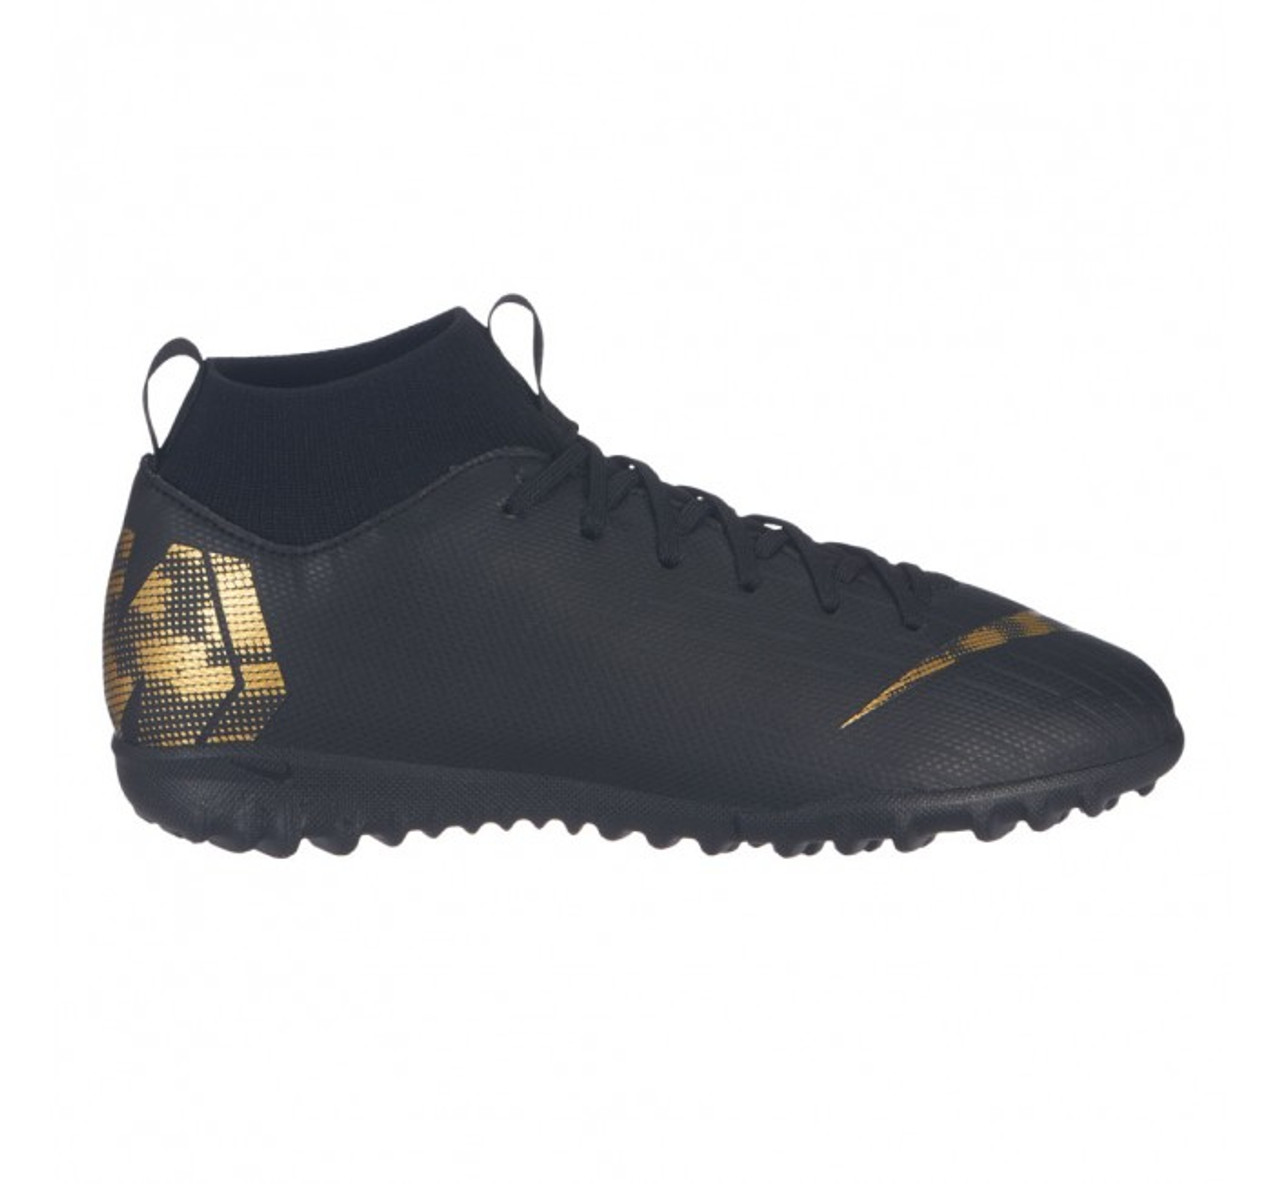 09d430350 NIKE JR SUPERFLY 6 ACADEMY GS TF Black/gold - Soccer Plus